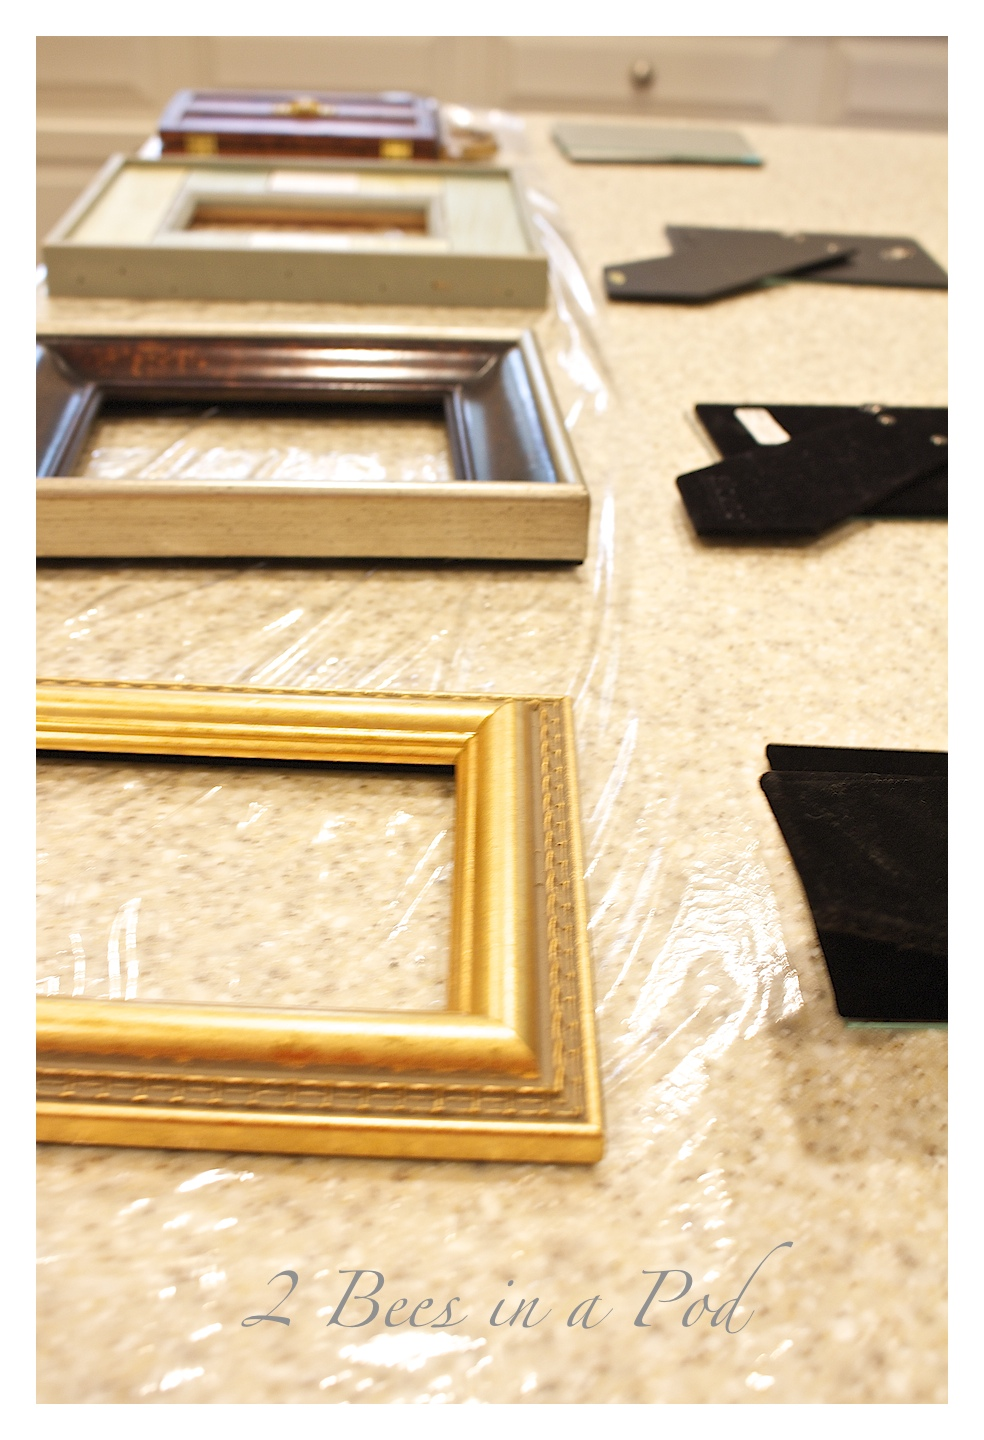 Painted Thrift Stores Frames - perfect for a cohesive look for little money.